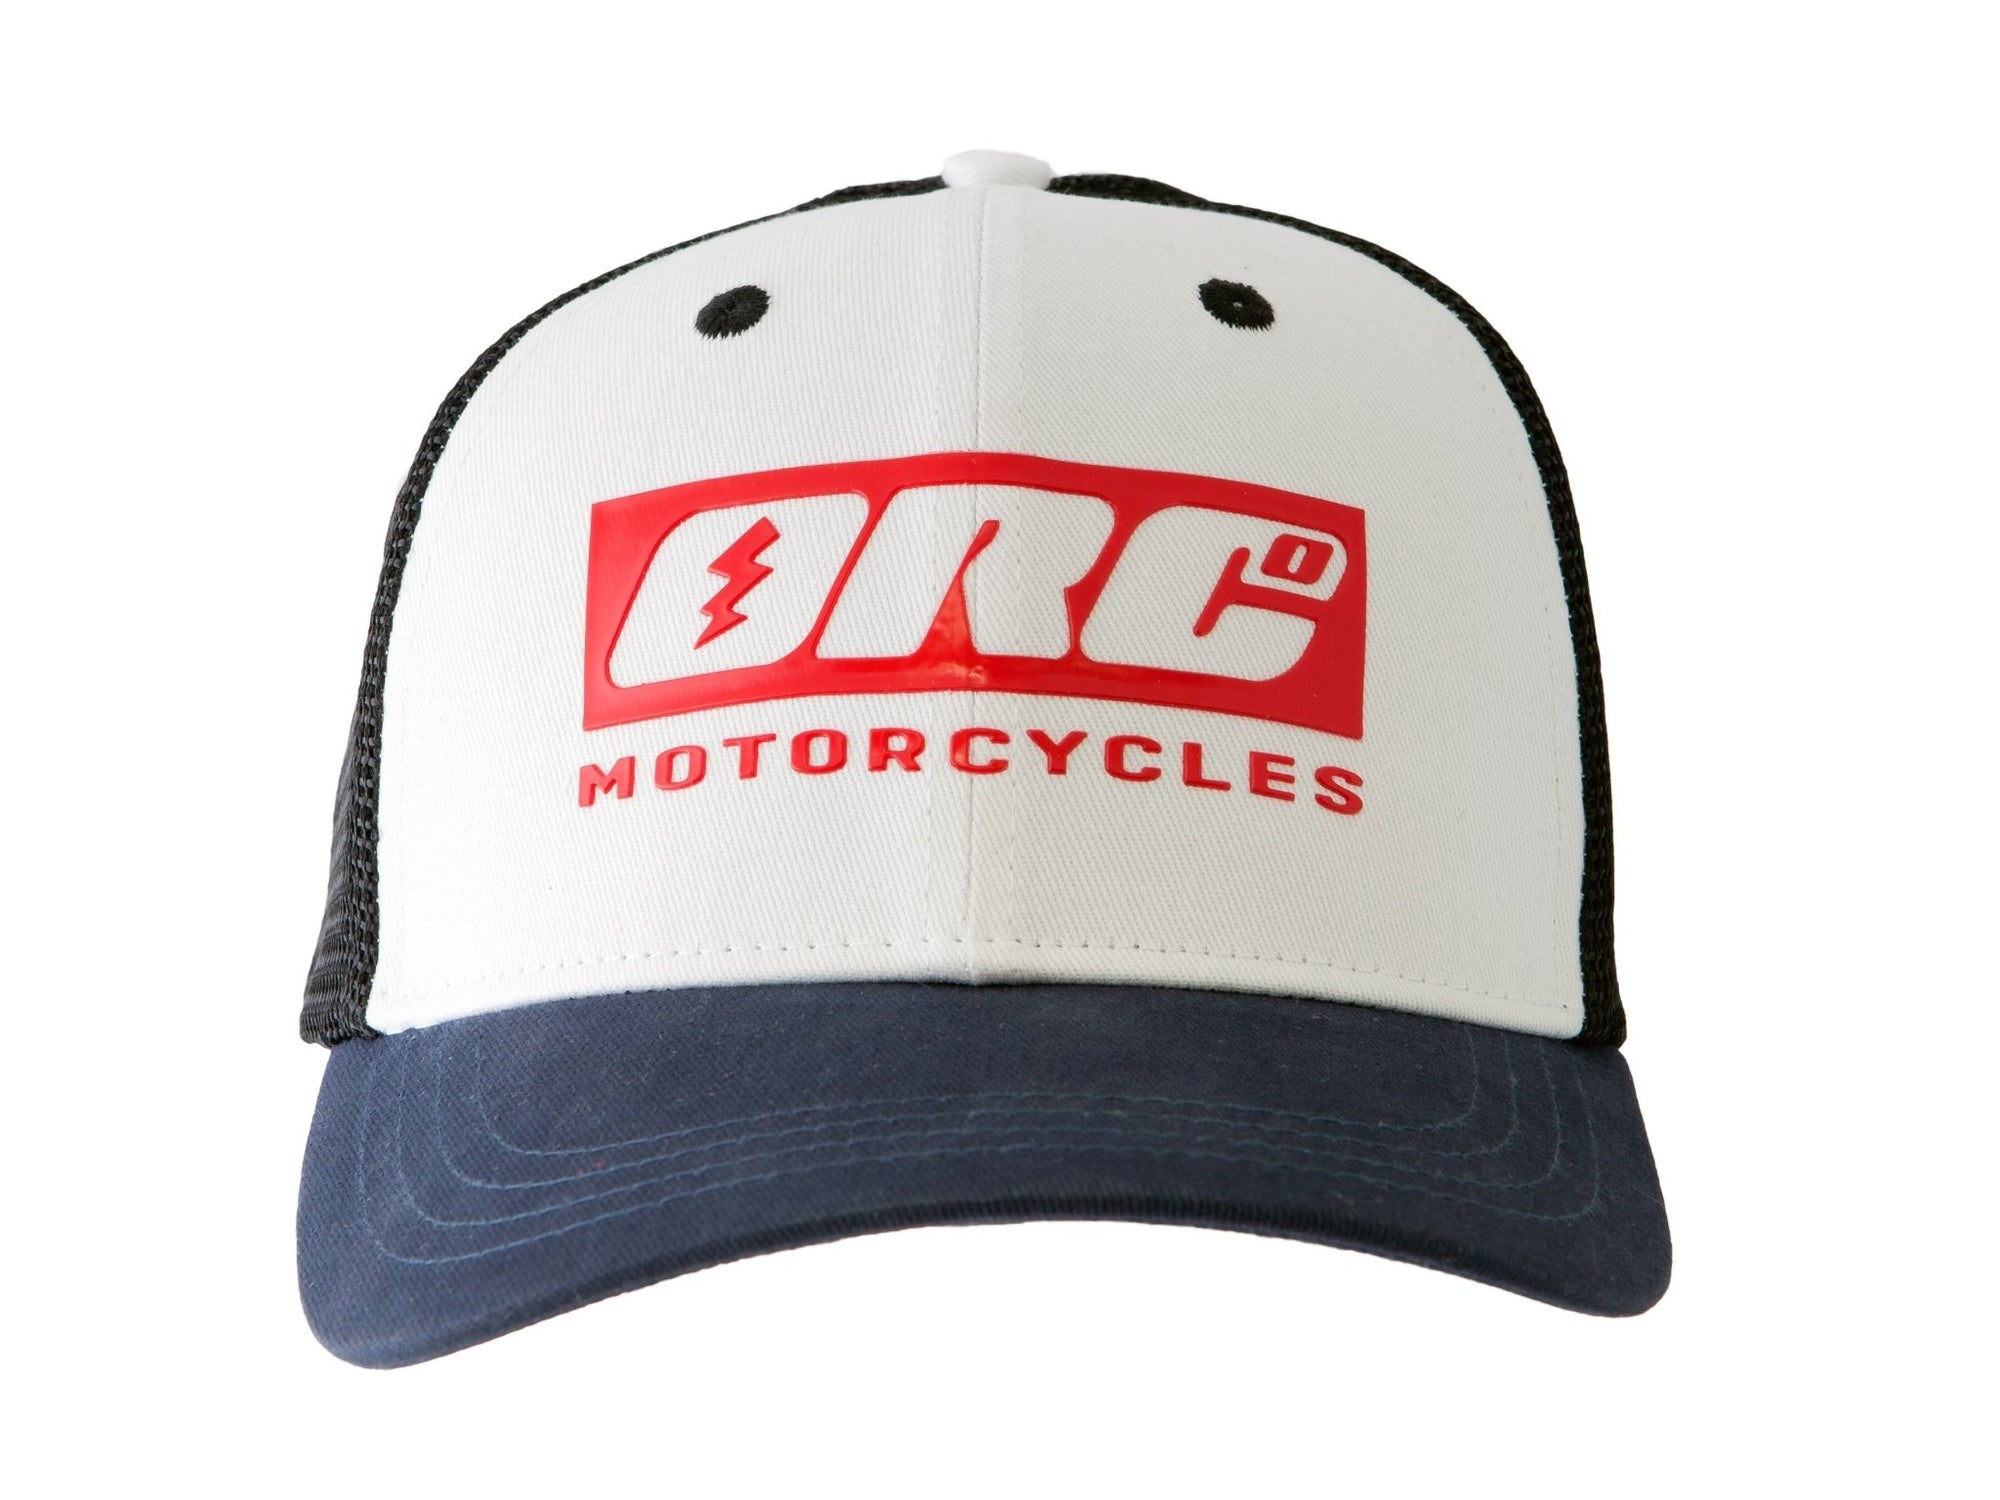 Oily Rag Clothing - Oily Rag Clothing ORC Motorcycles Trucker Cap - Caps - Salt Flats Clothing